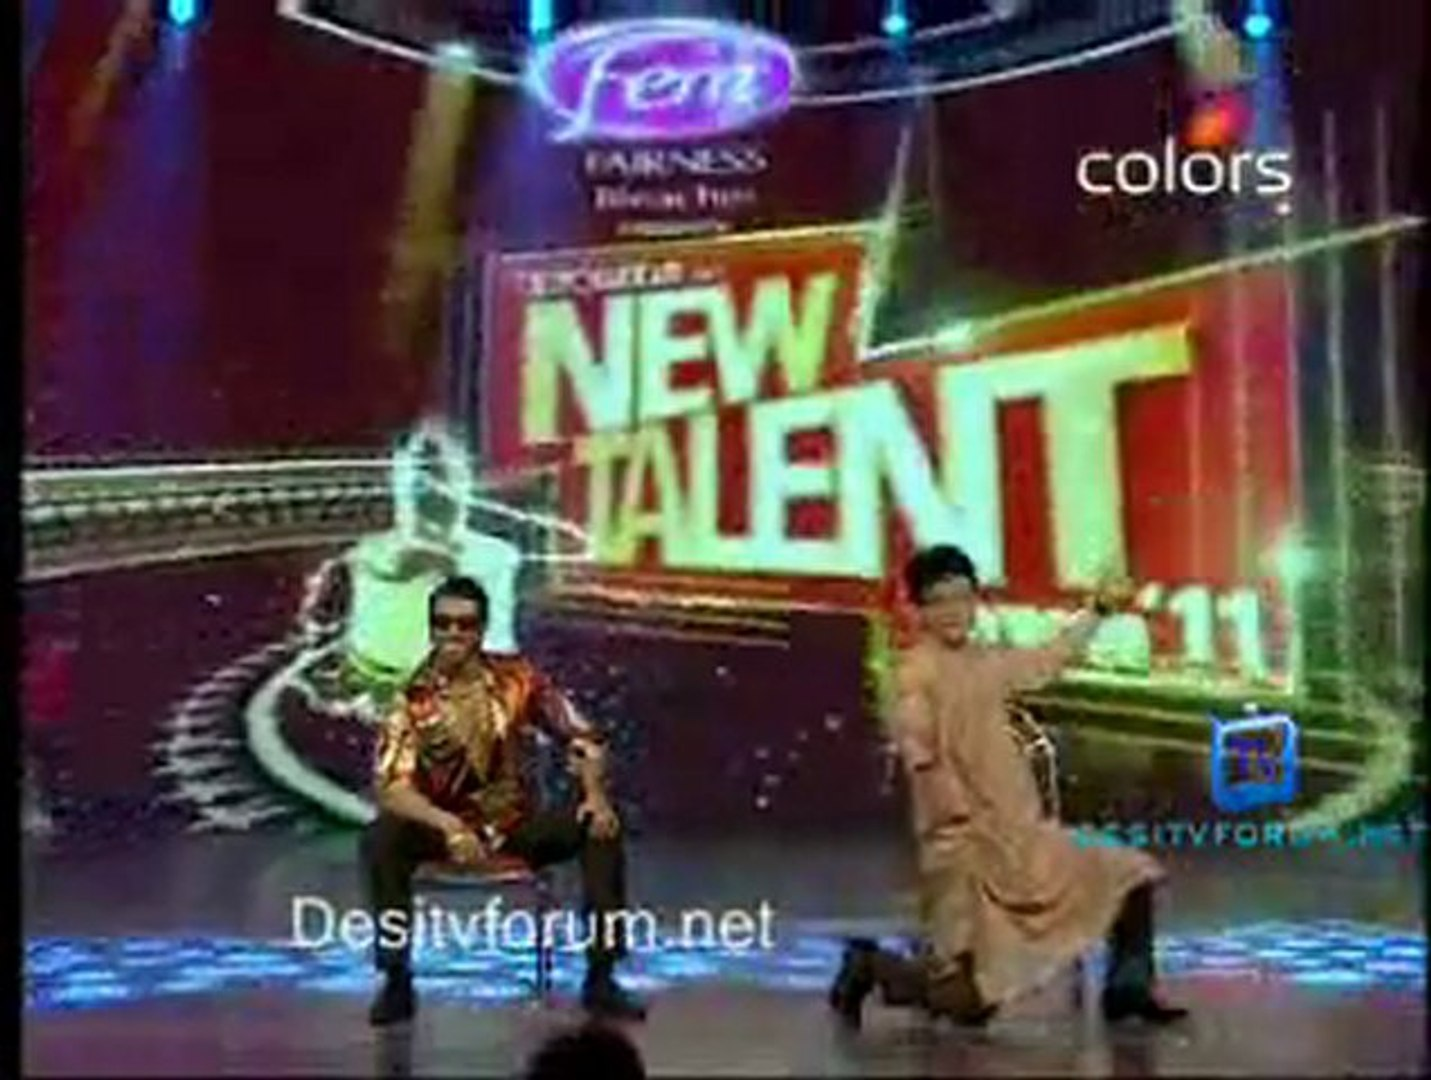 New Talent Awards 2011 - 16th October 2011 Video Watch Online p5